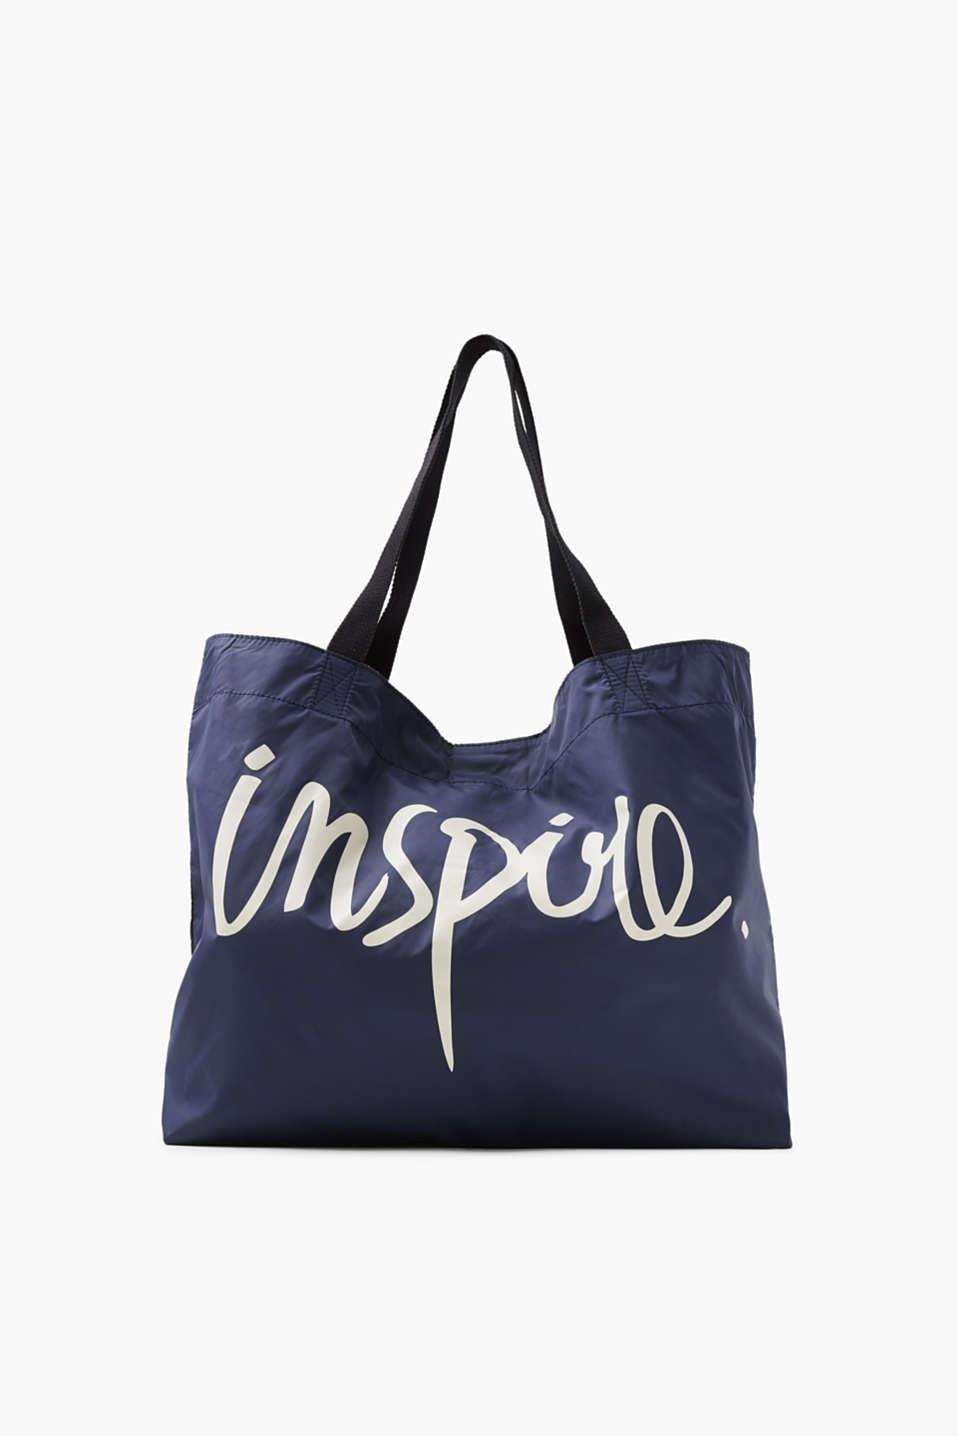 Inspire! A print that makes a statement. This reversible shopper with a logo print impresses with its tartan pattern.